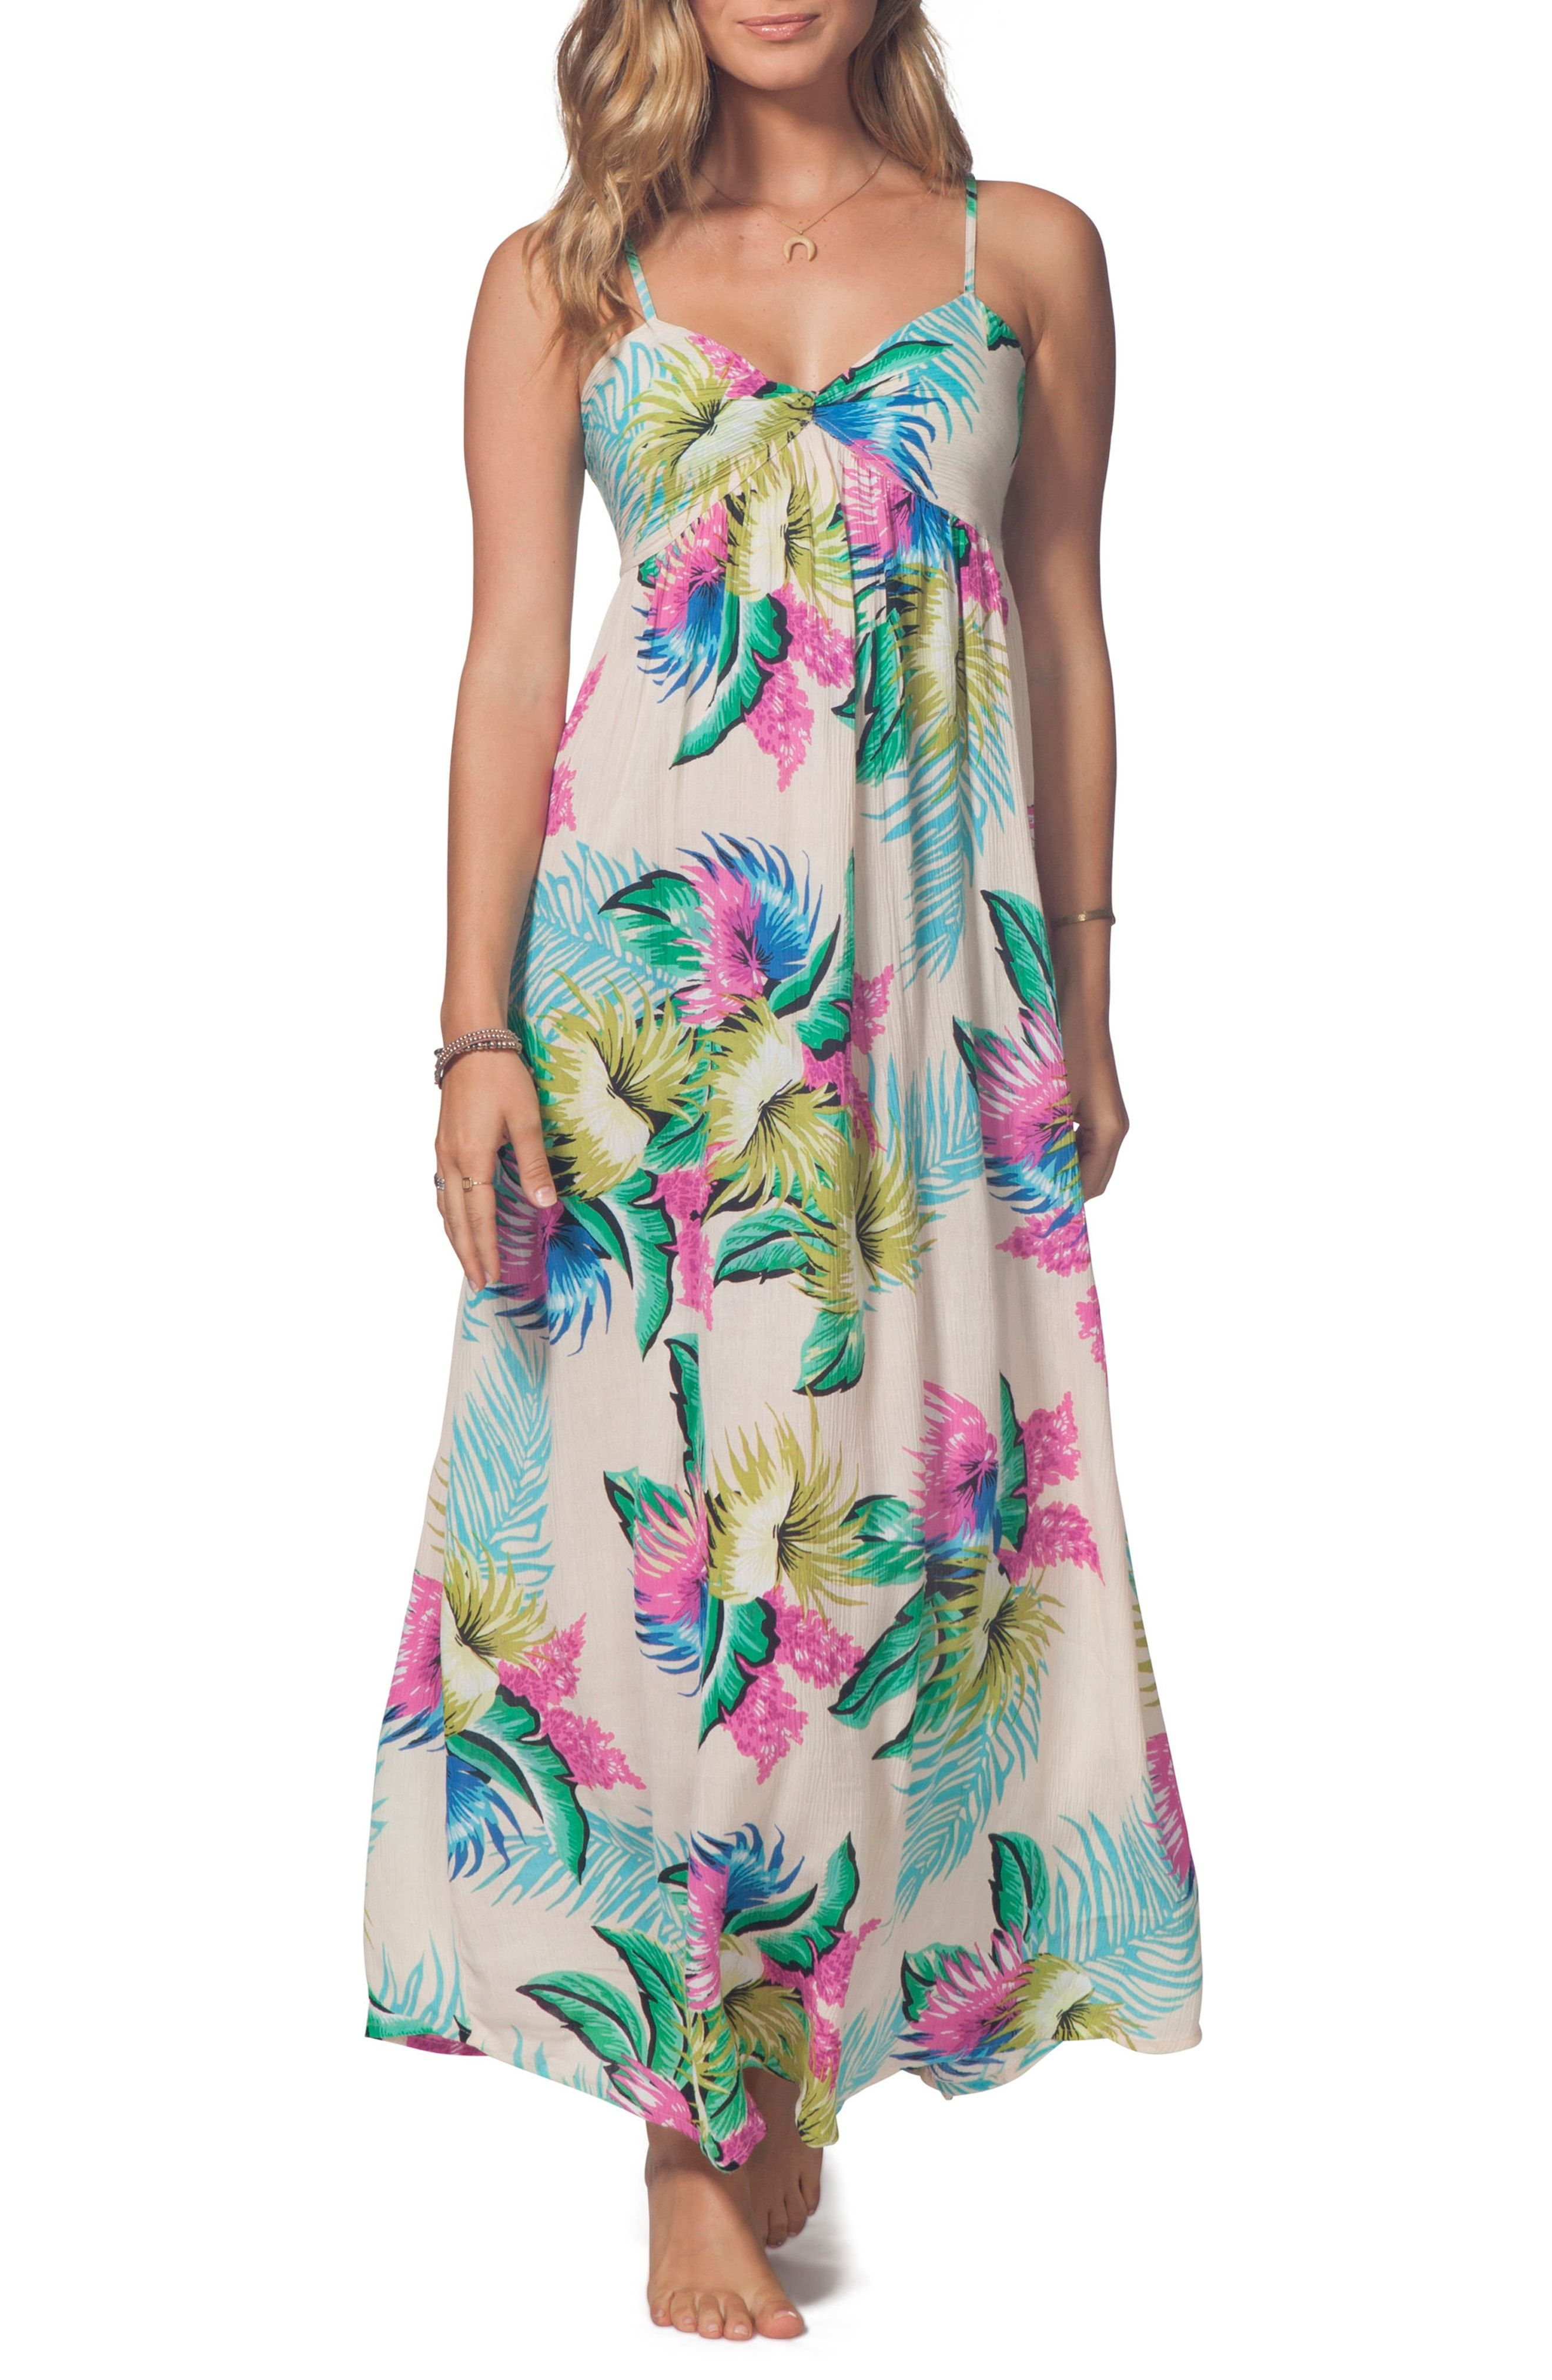 83f904ea7396b4 Lilly Pulitzer(R) Lannette Embellished Chiffon Maxi Dress perfect for a  wedding guest #affiliate | My Closet in 2018 | Pinterest | Chiffon maxi  dress, ...